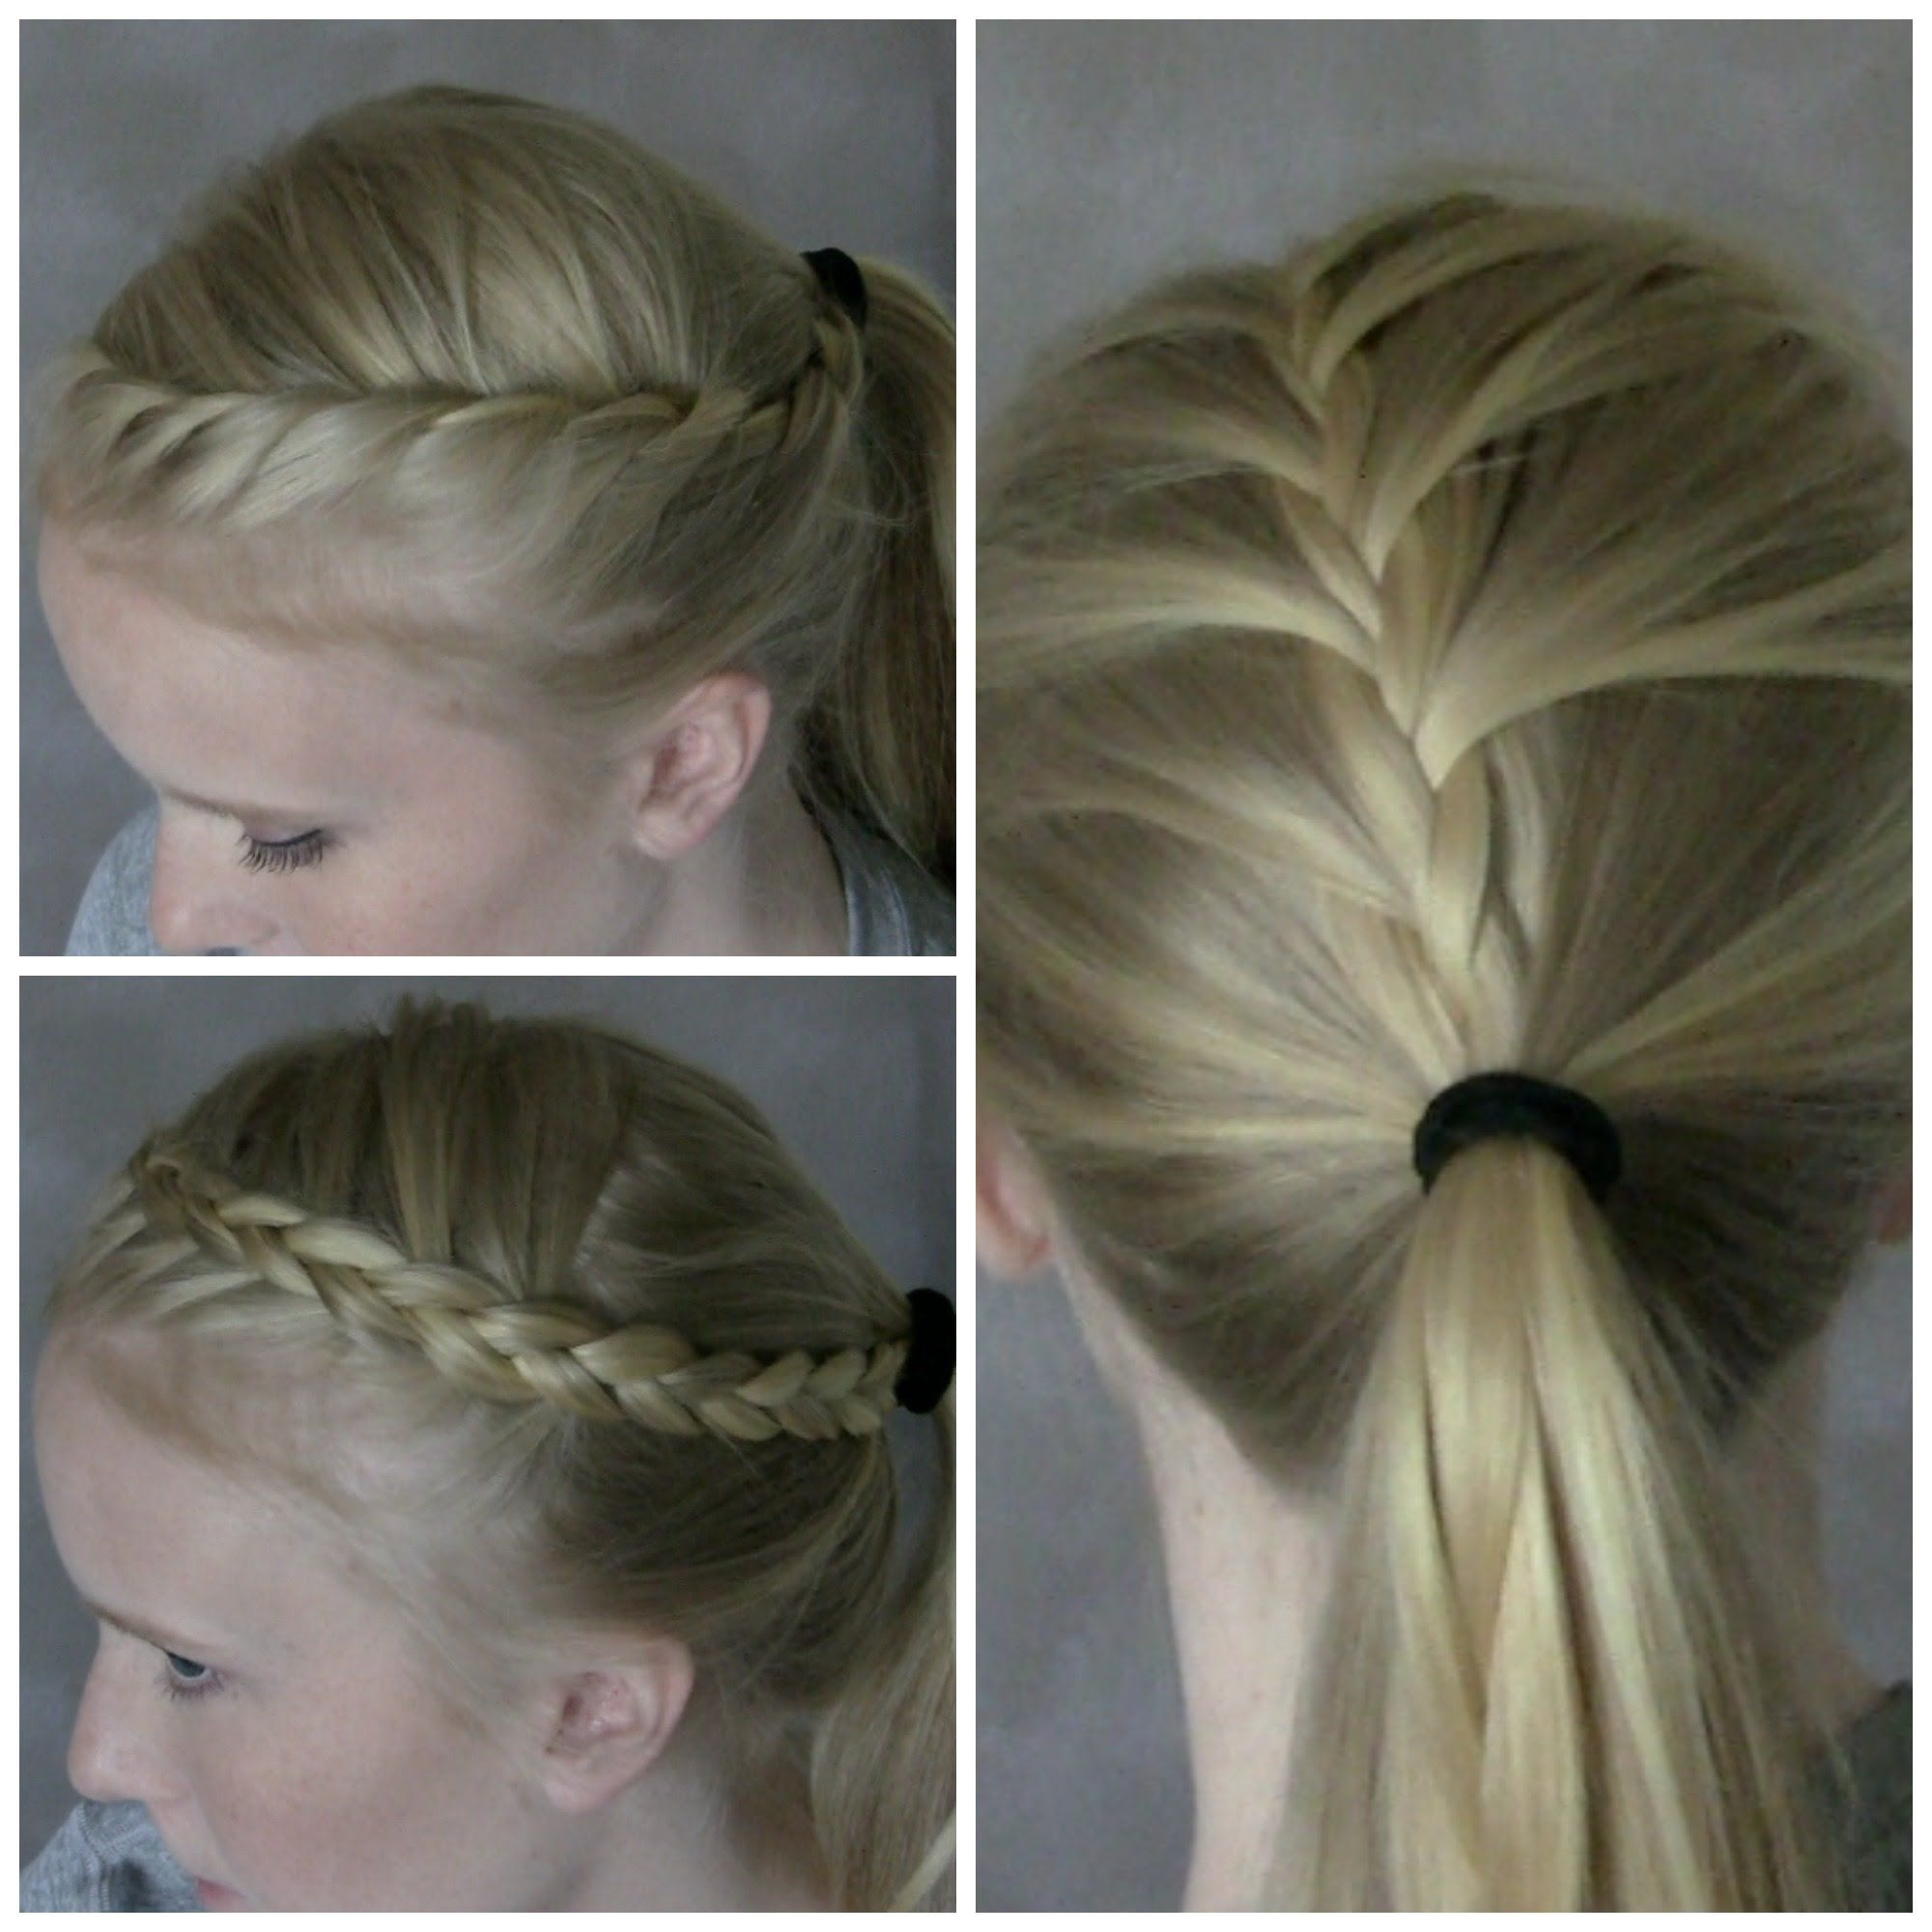 Best Athletic Hairstyles! | Hair Do's | Pinterest | Athletic Intended For Sporty Updo Hairstyles For Short Hair (View 10 of 15)